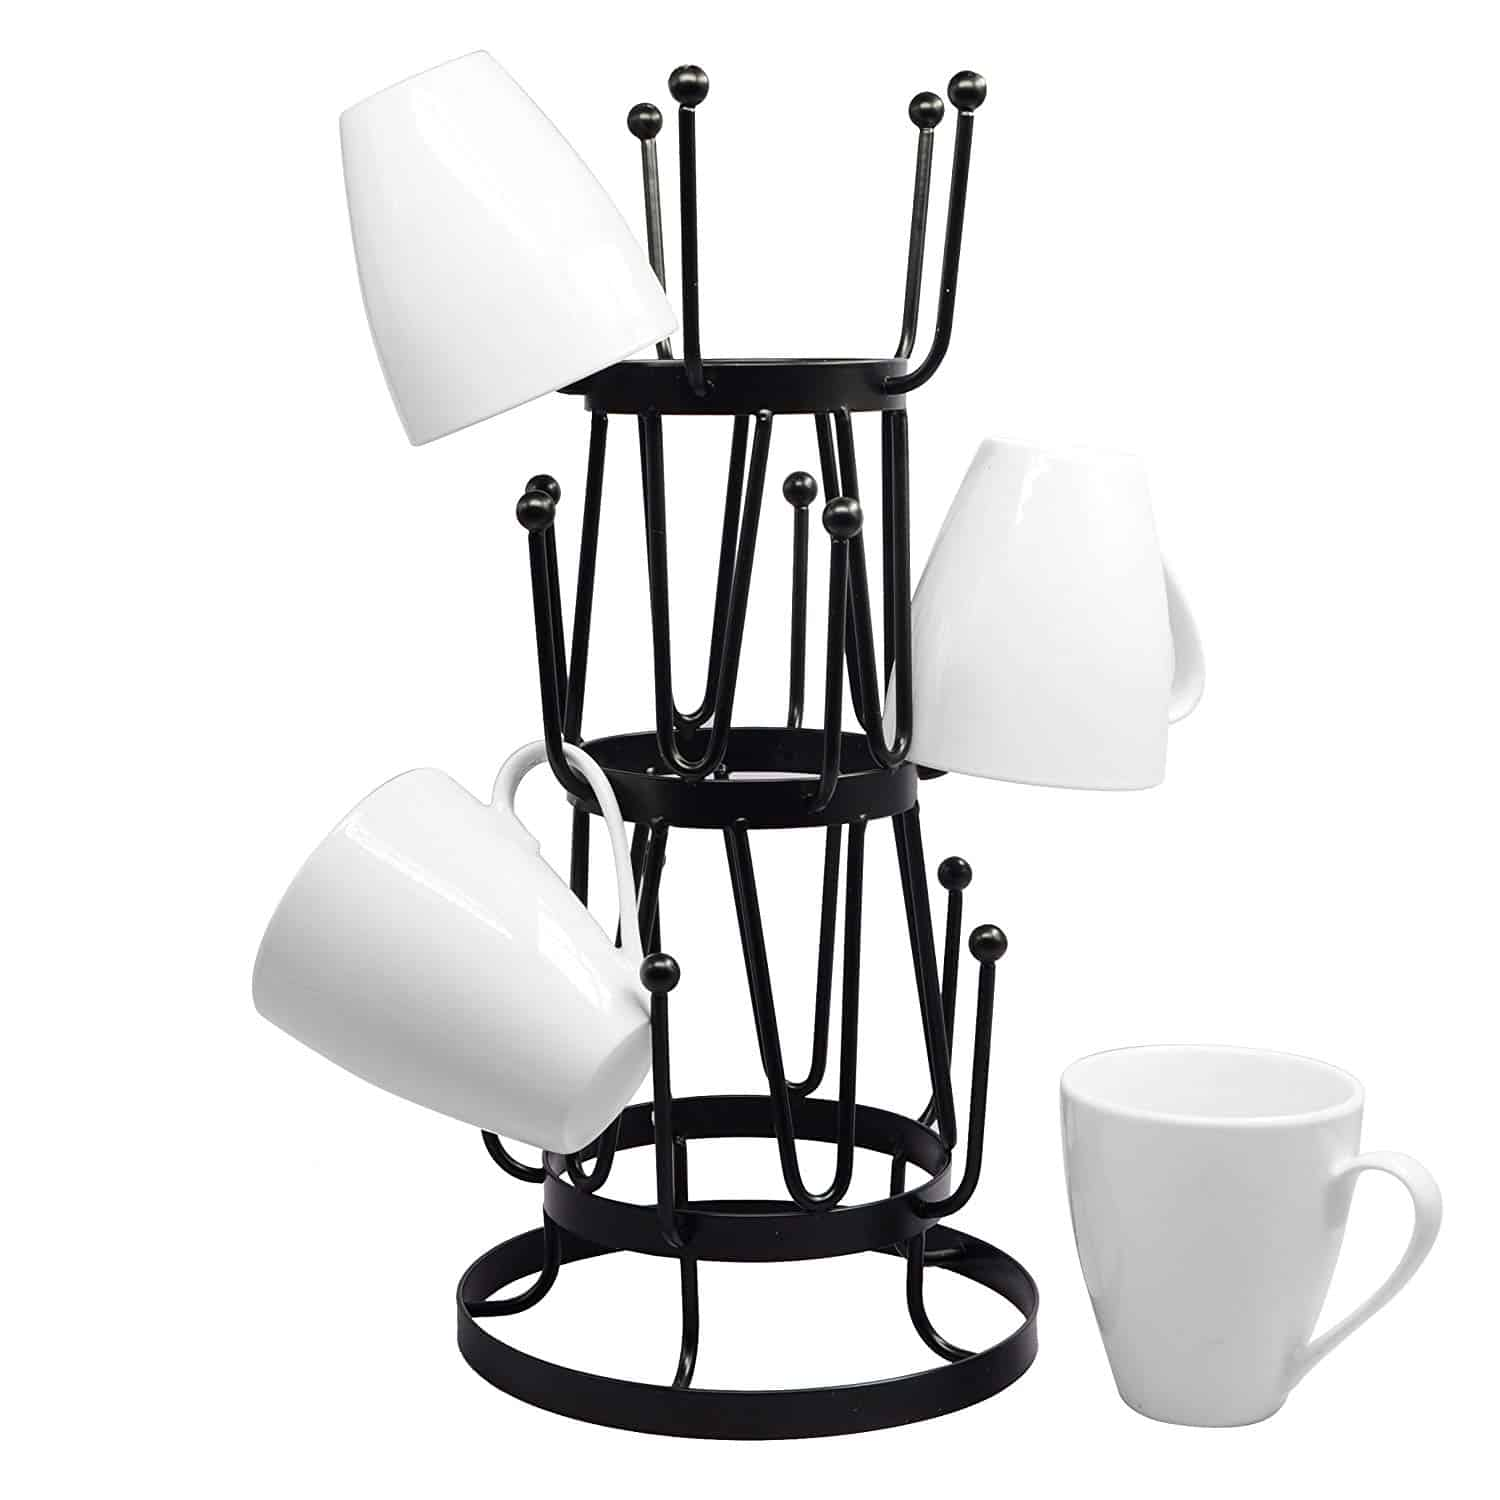 Stylish Mug Tree Holder